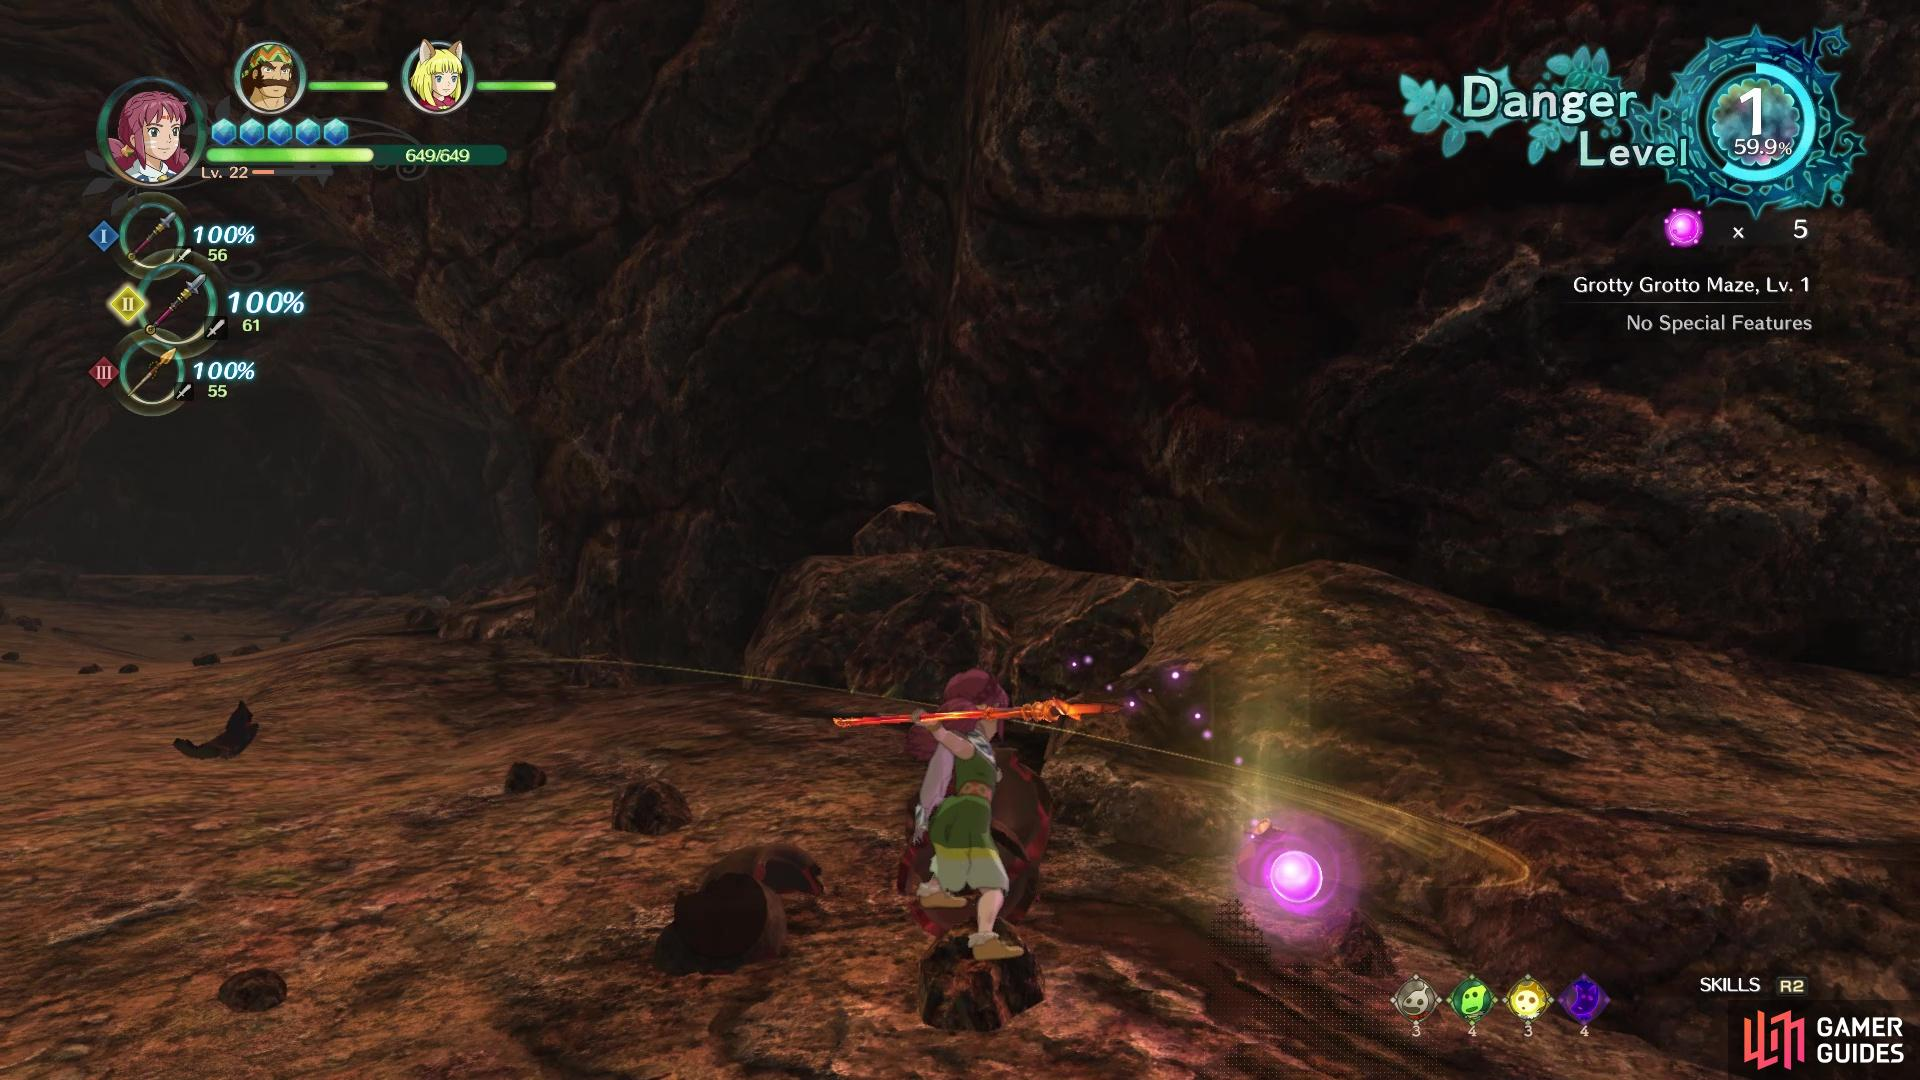 Pink Orbs can be acquired from breaking pots or defeating enemies